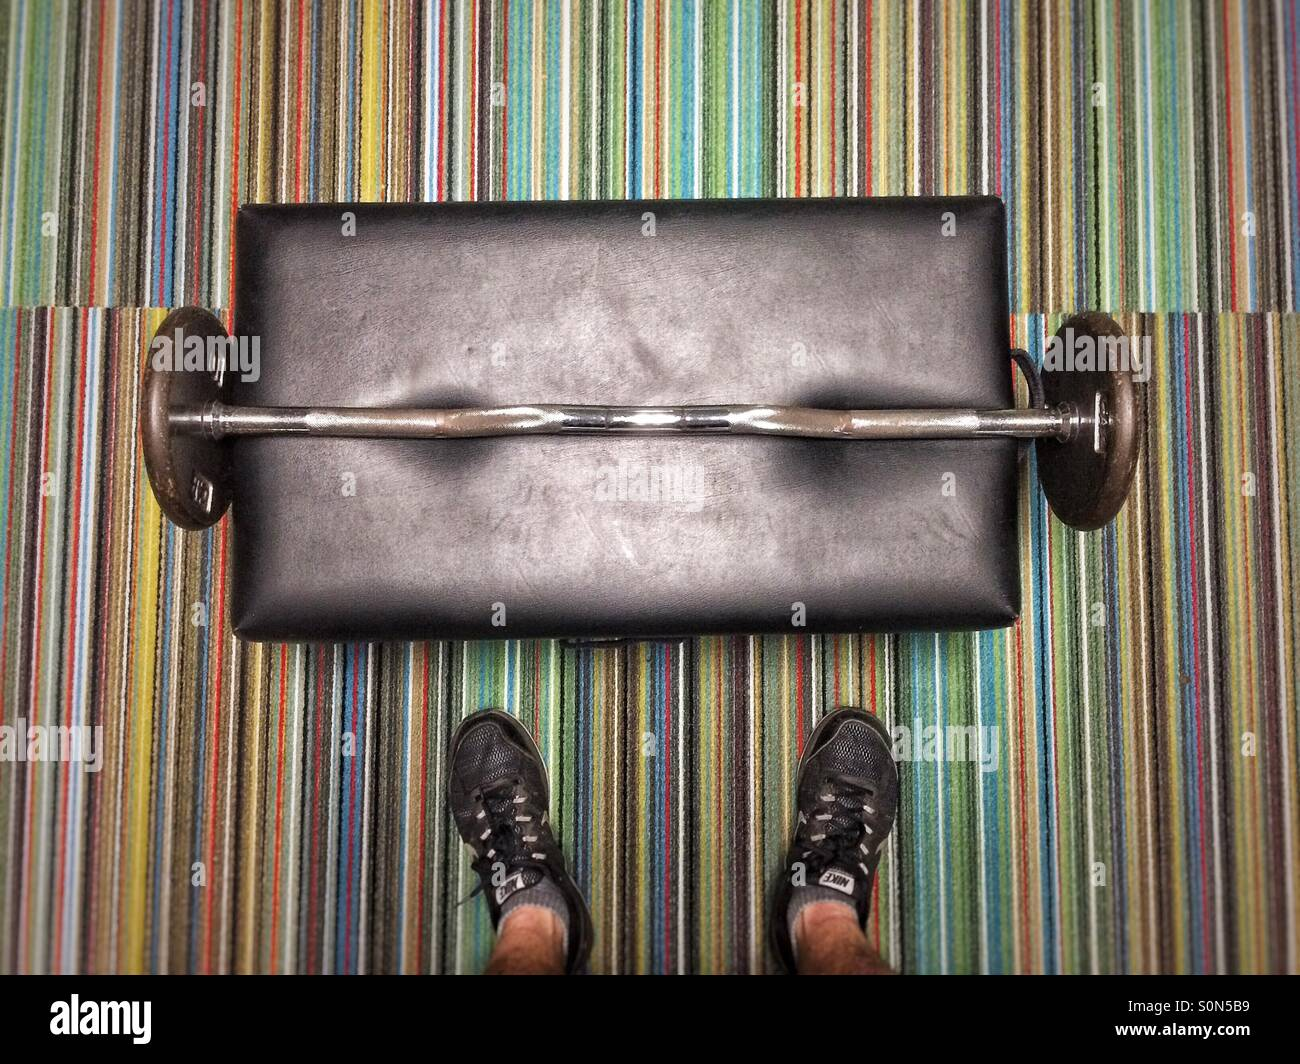 Man before barbell at gym - Stock Image